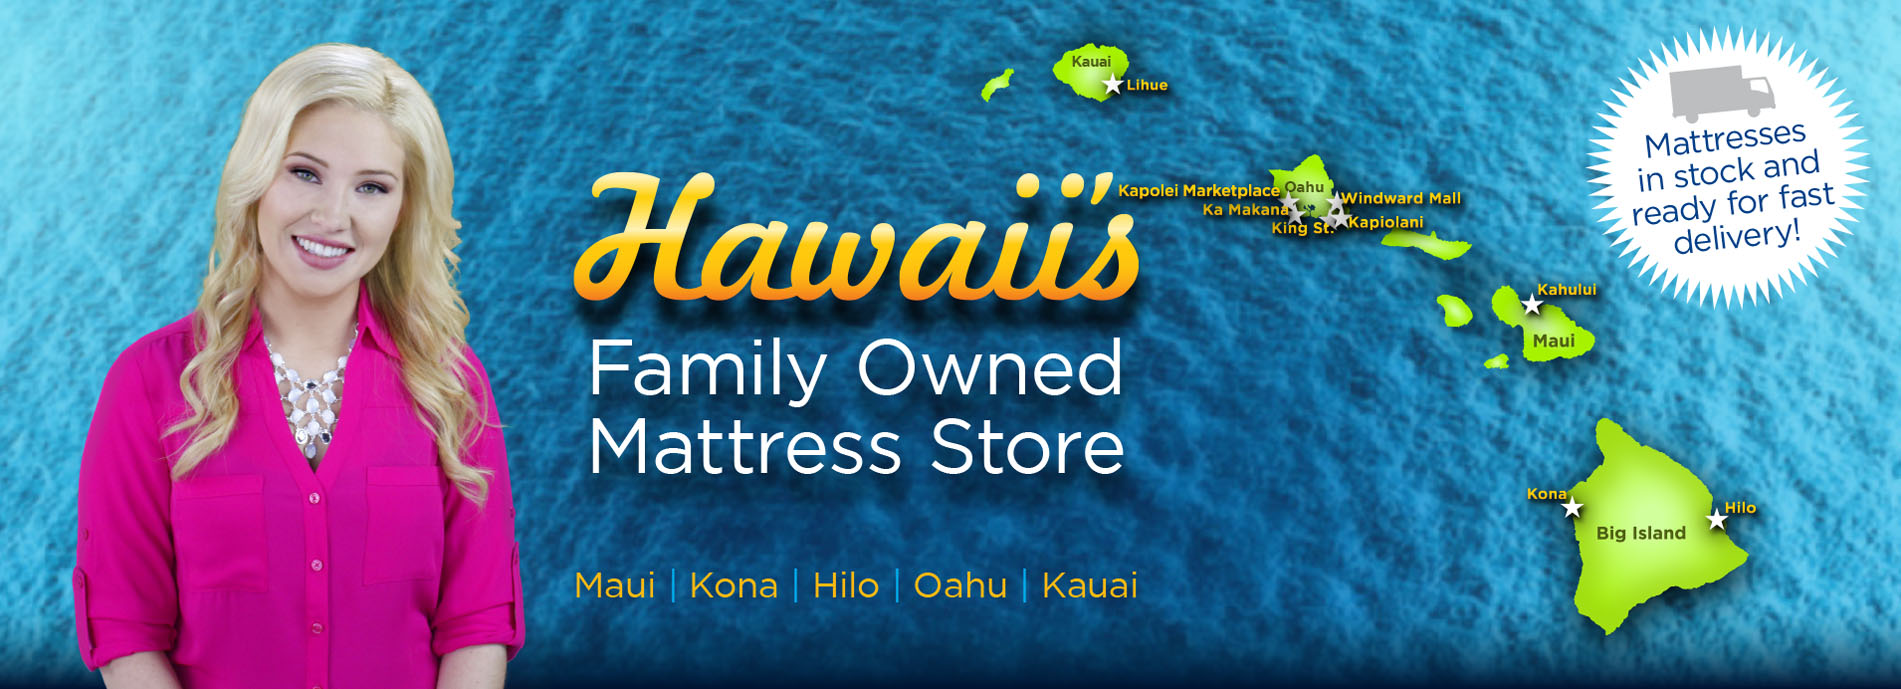 Hawaii's Family Owned Mattress Store